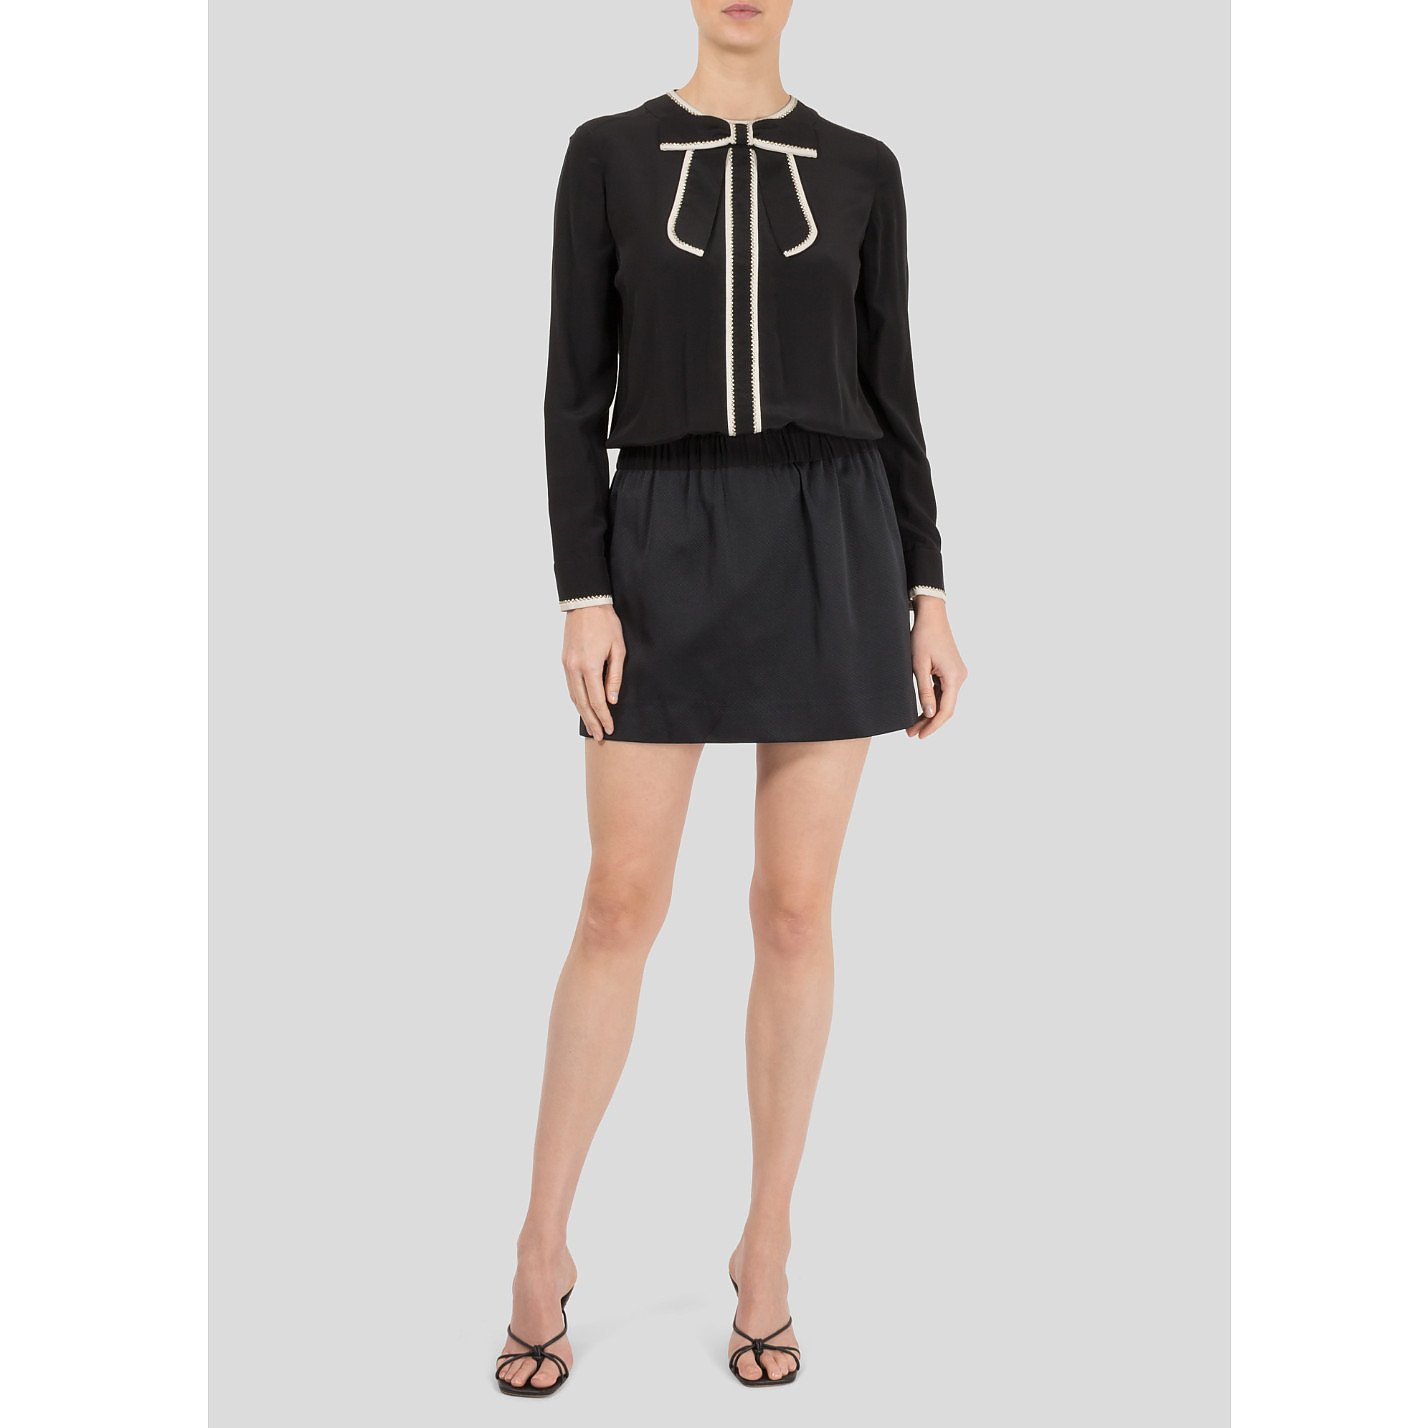 Victoria Beckham Mini Dress With A Bow Neckline